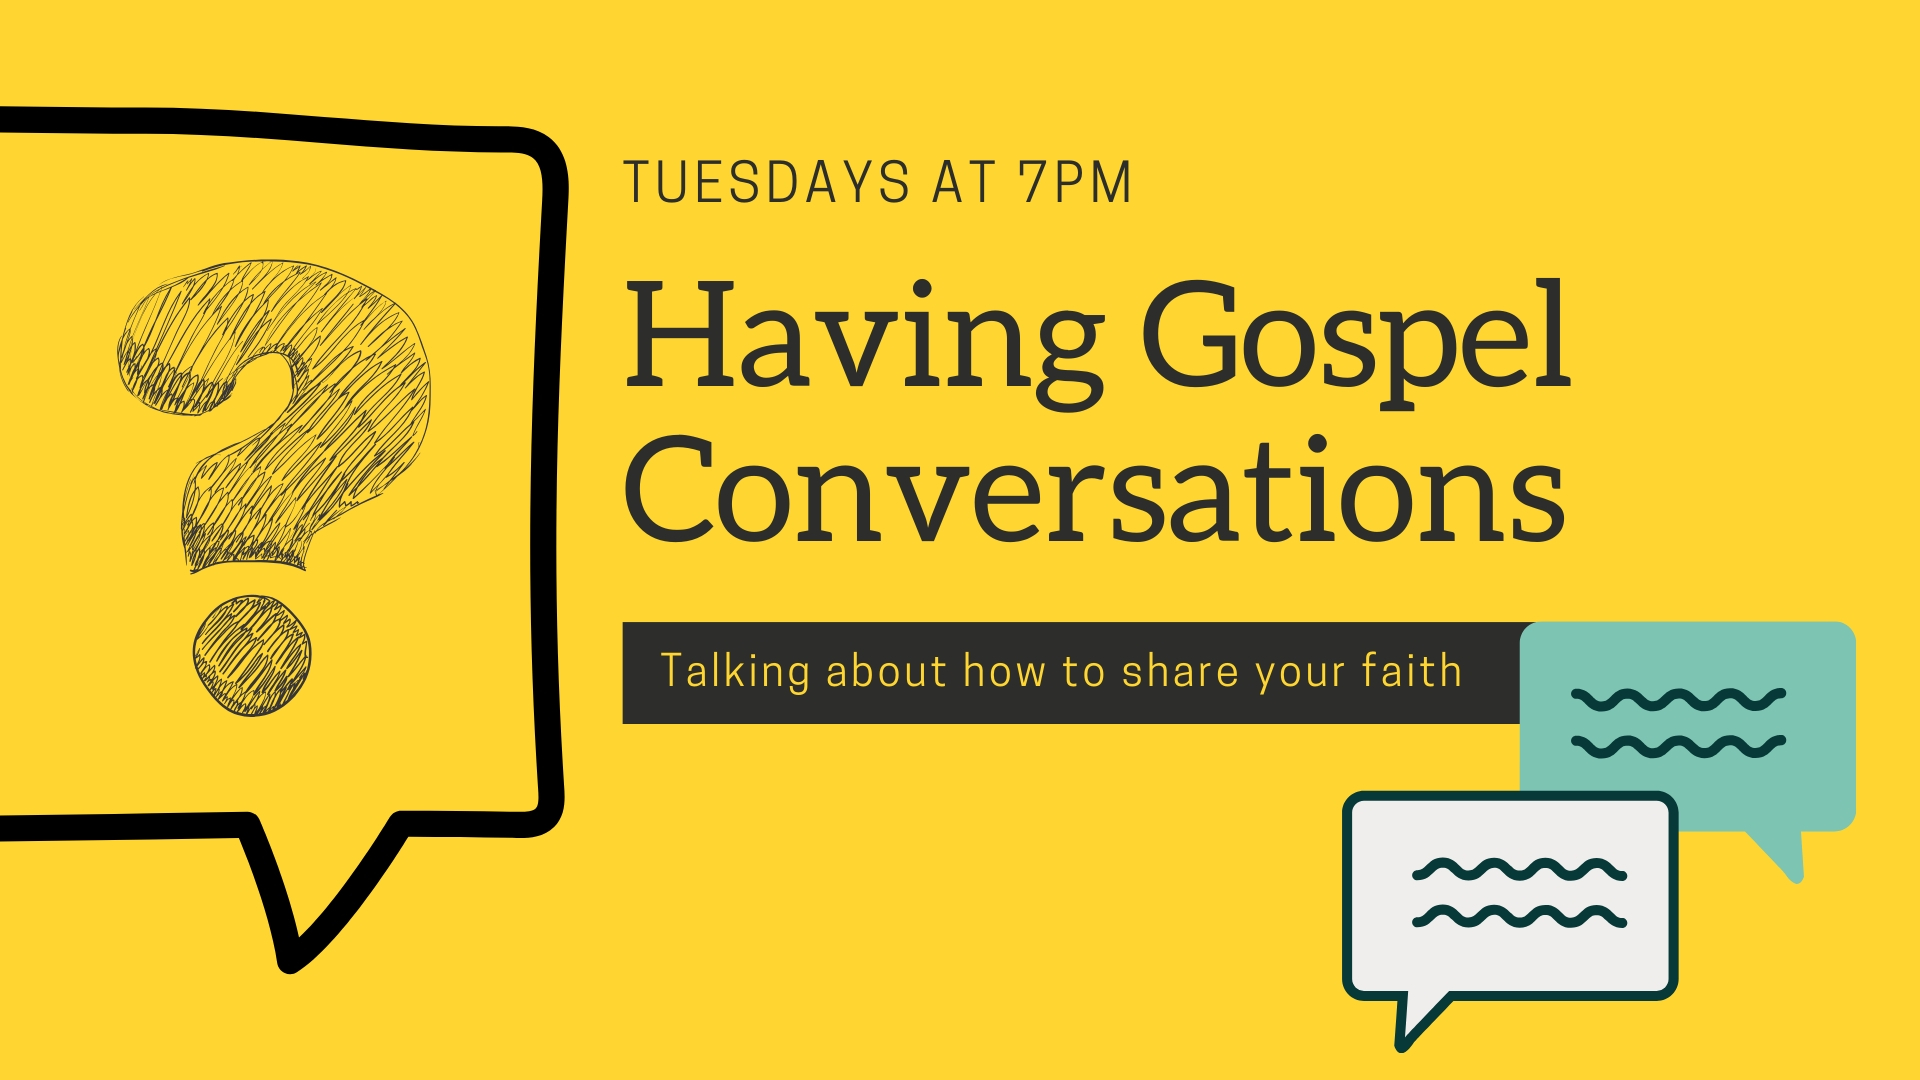 Having Gospel Conversations - Week 7 Image